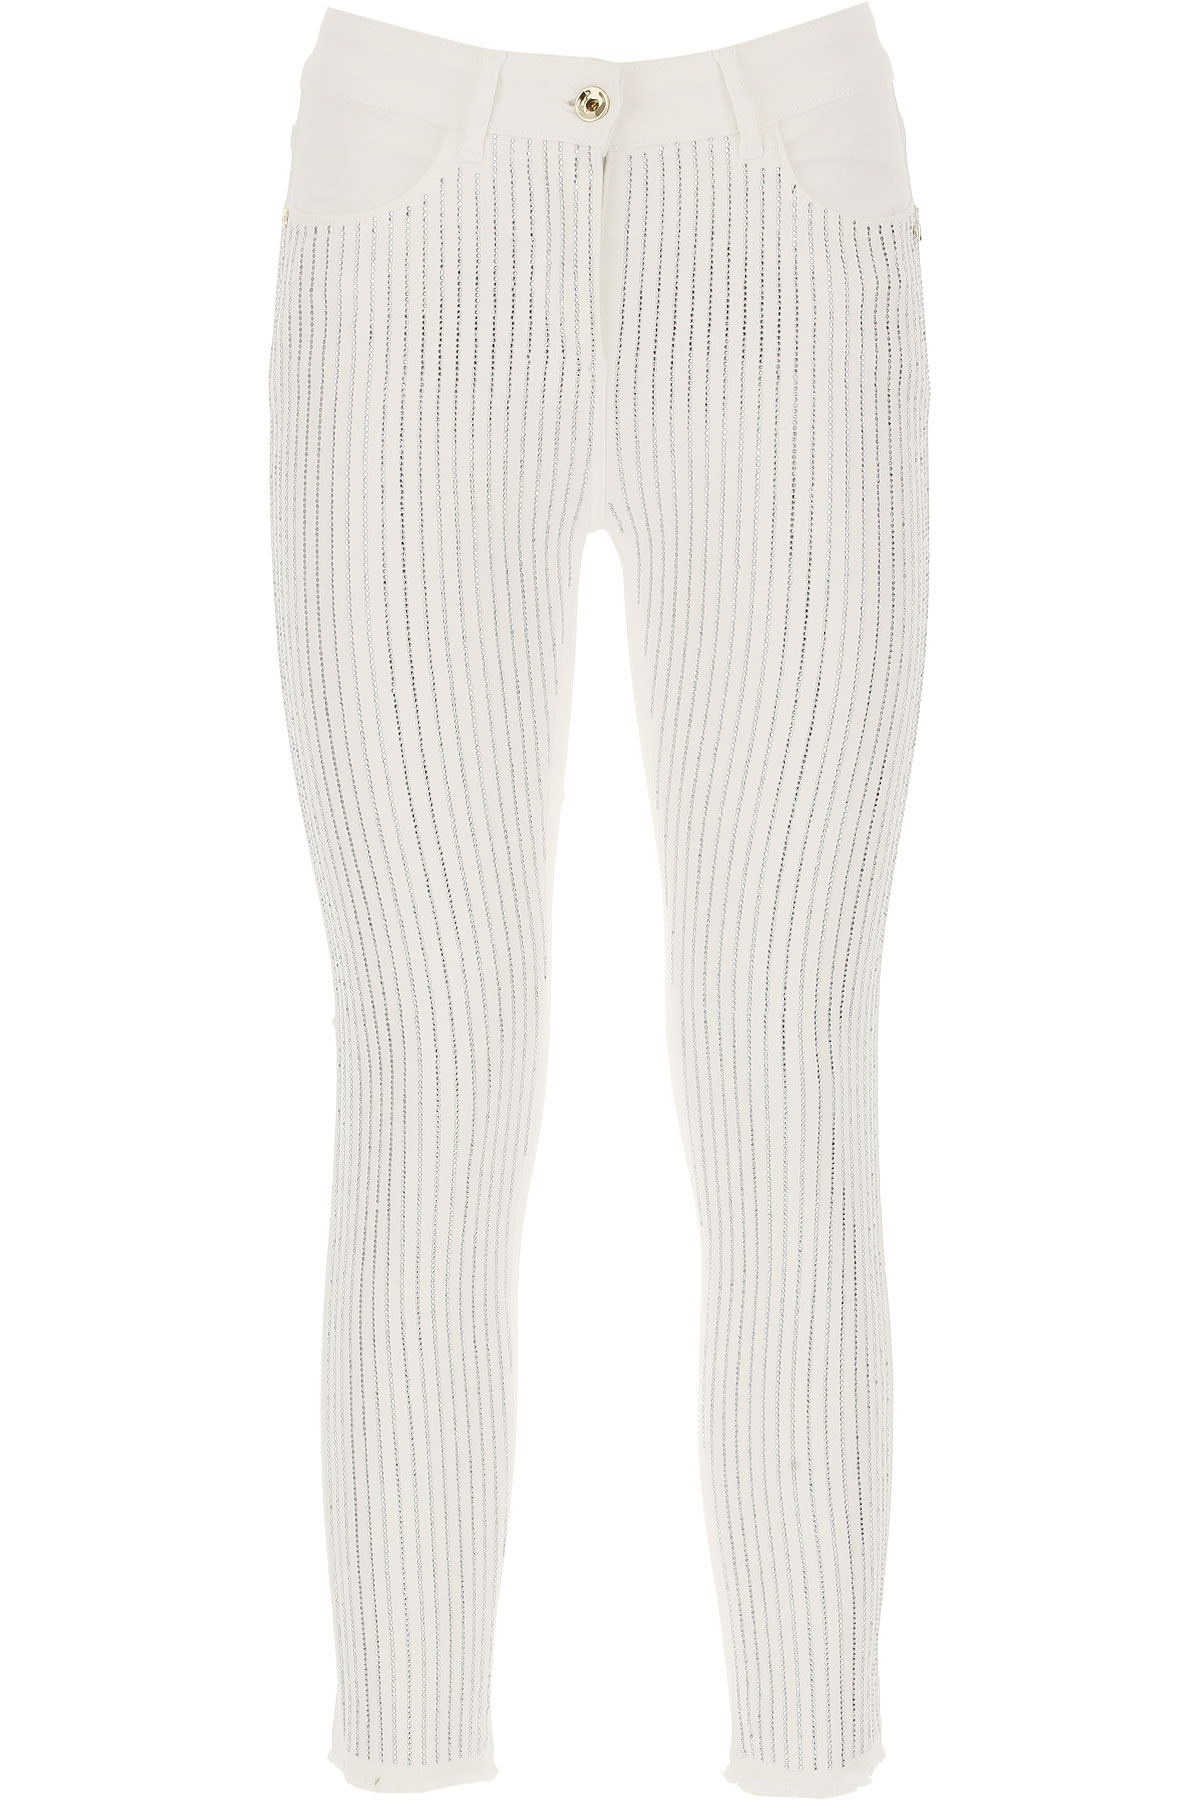 Patrizia Pepe Jeans, White, Cotton, 2017, 26 27 28 29 30